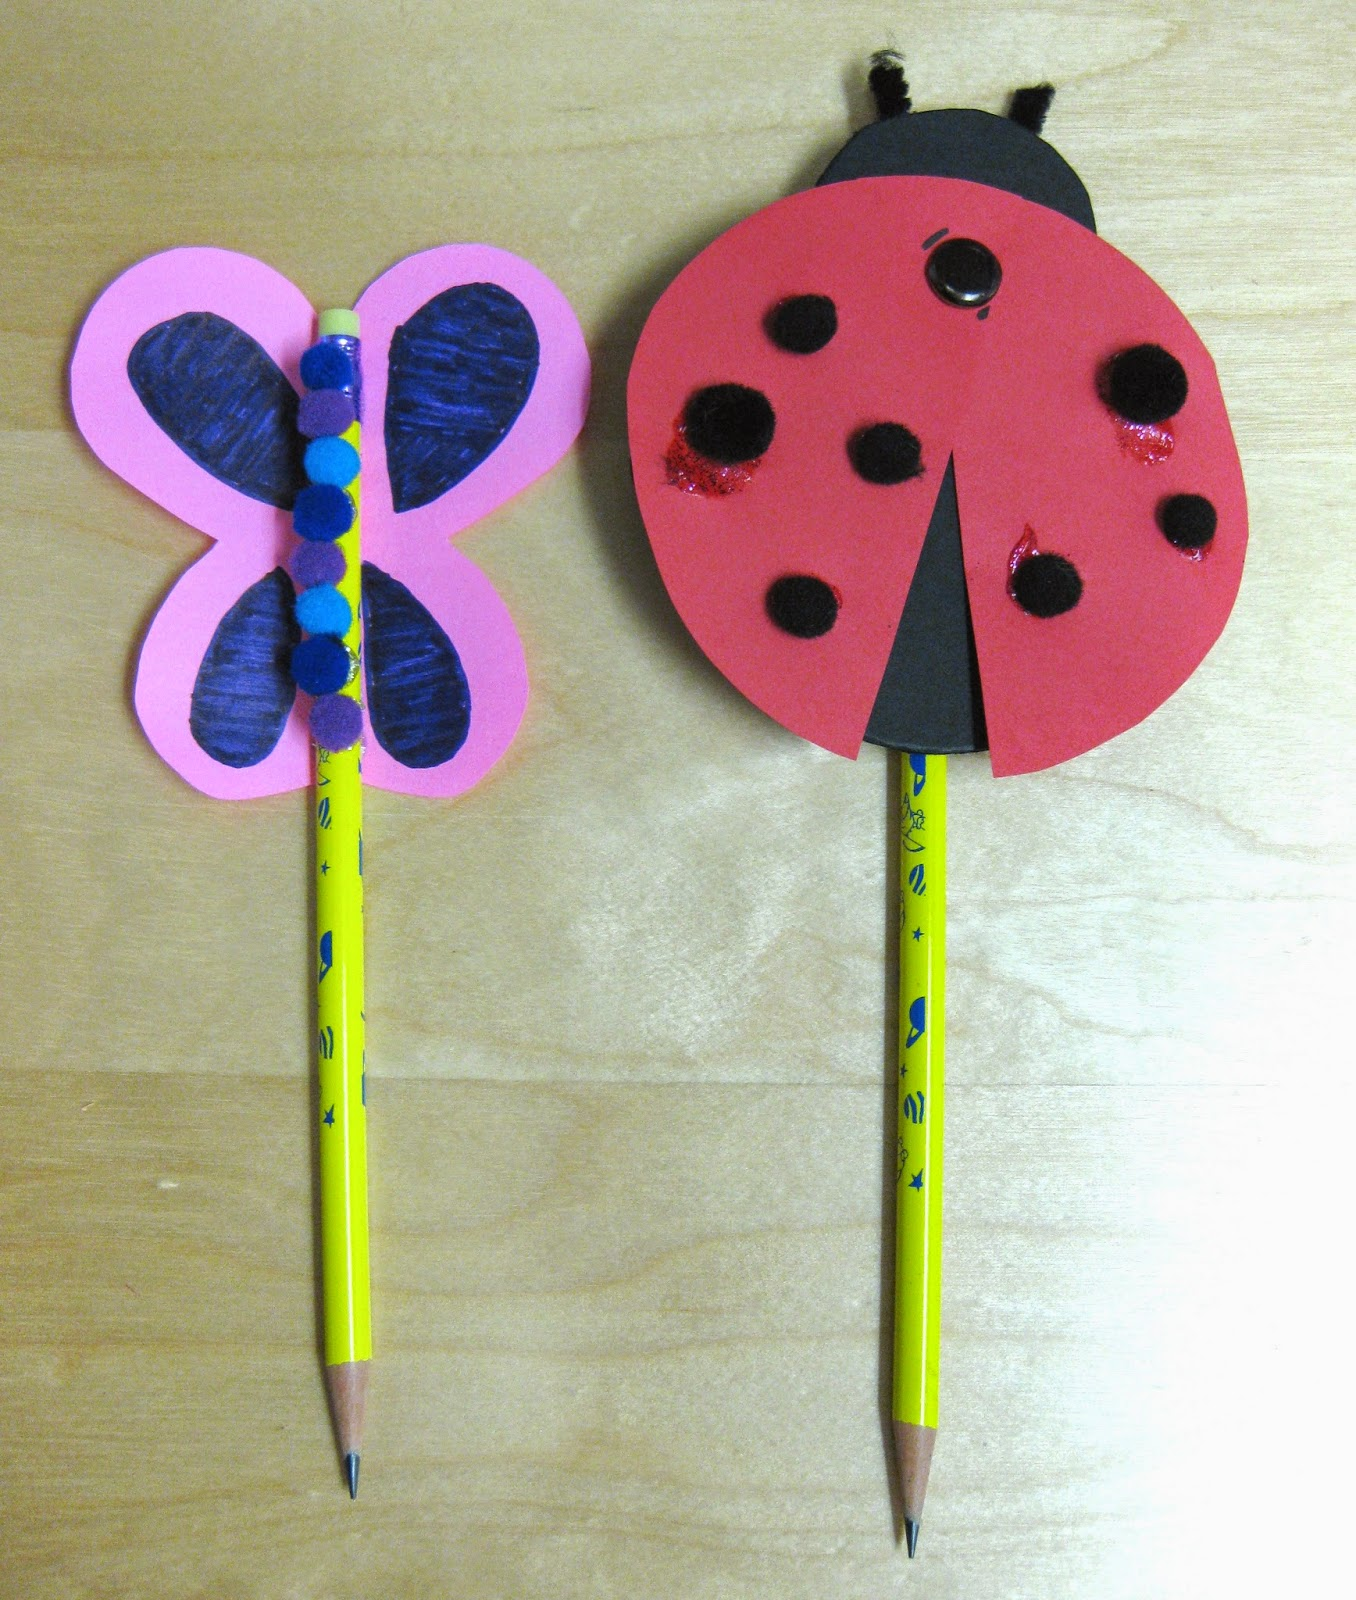 Attractive Art And Craft Ideas For Kids Part - 7: Pencil Craft Ideas For Kids